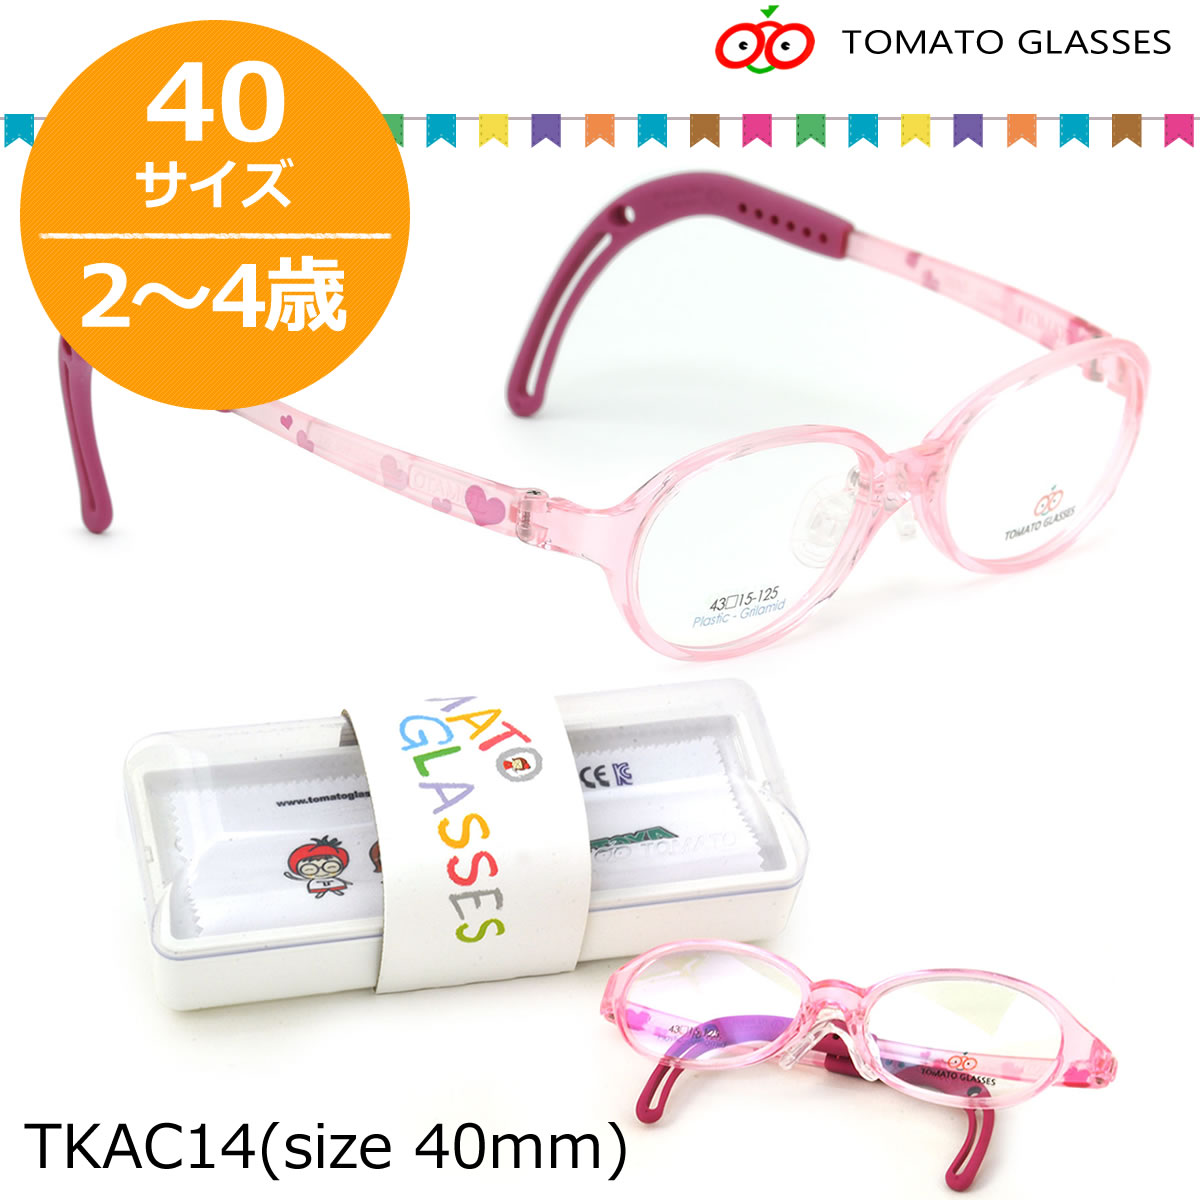 Optical Shop Thats | Rakuten Global Market: (Tomato glasshouse) kids ...